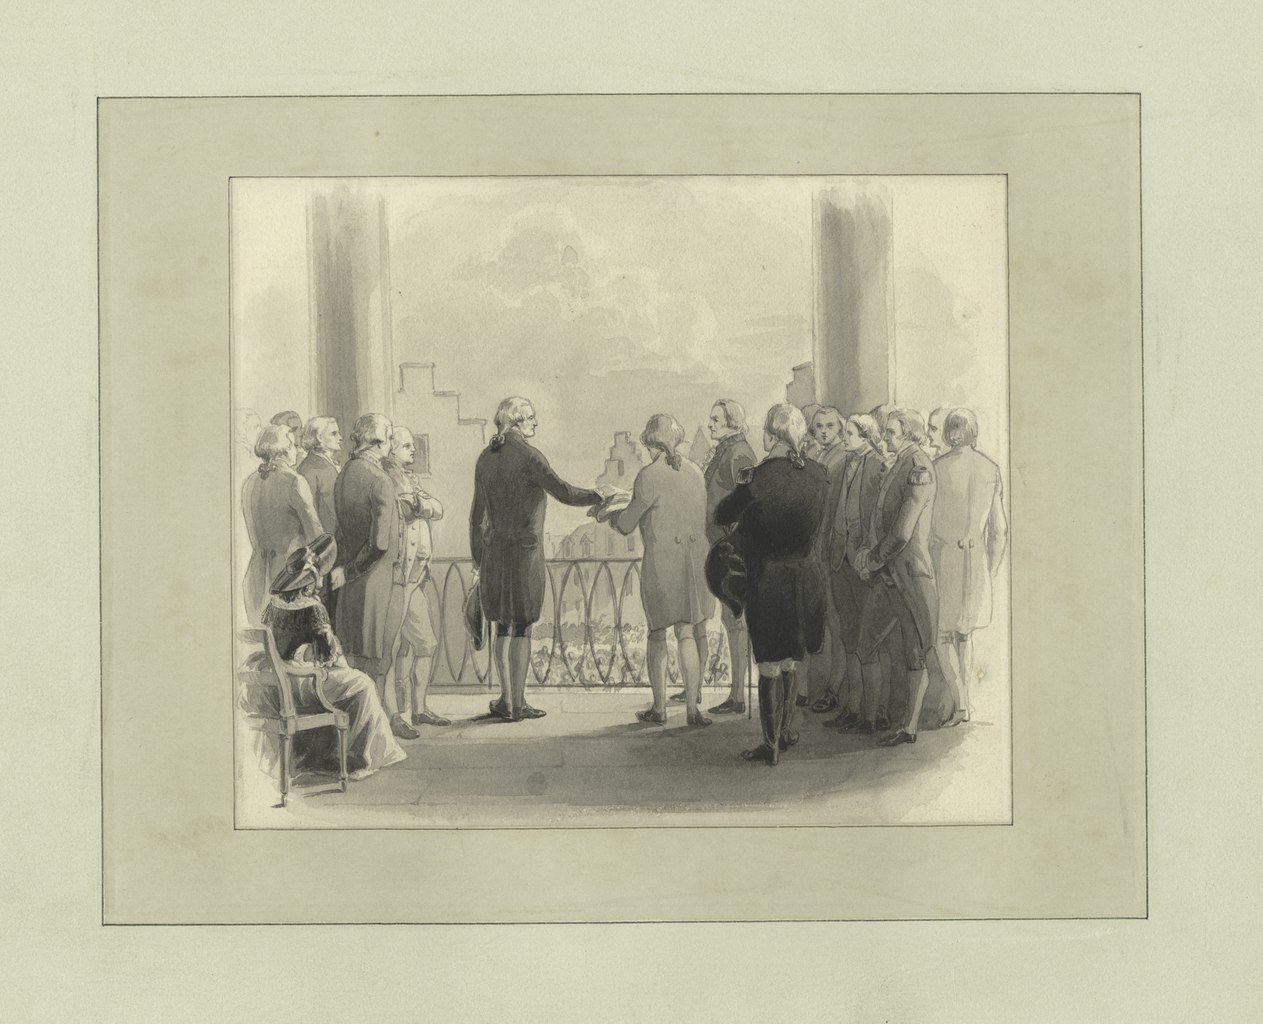 """""""Washington swearing the oath of office,"""" Source: New York Public Library's Digital Collection."""